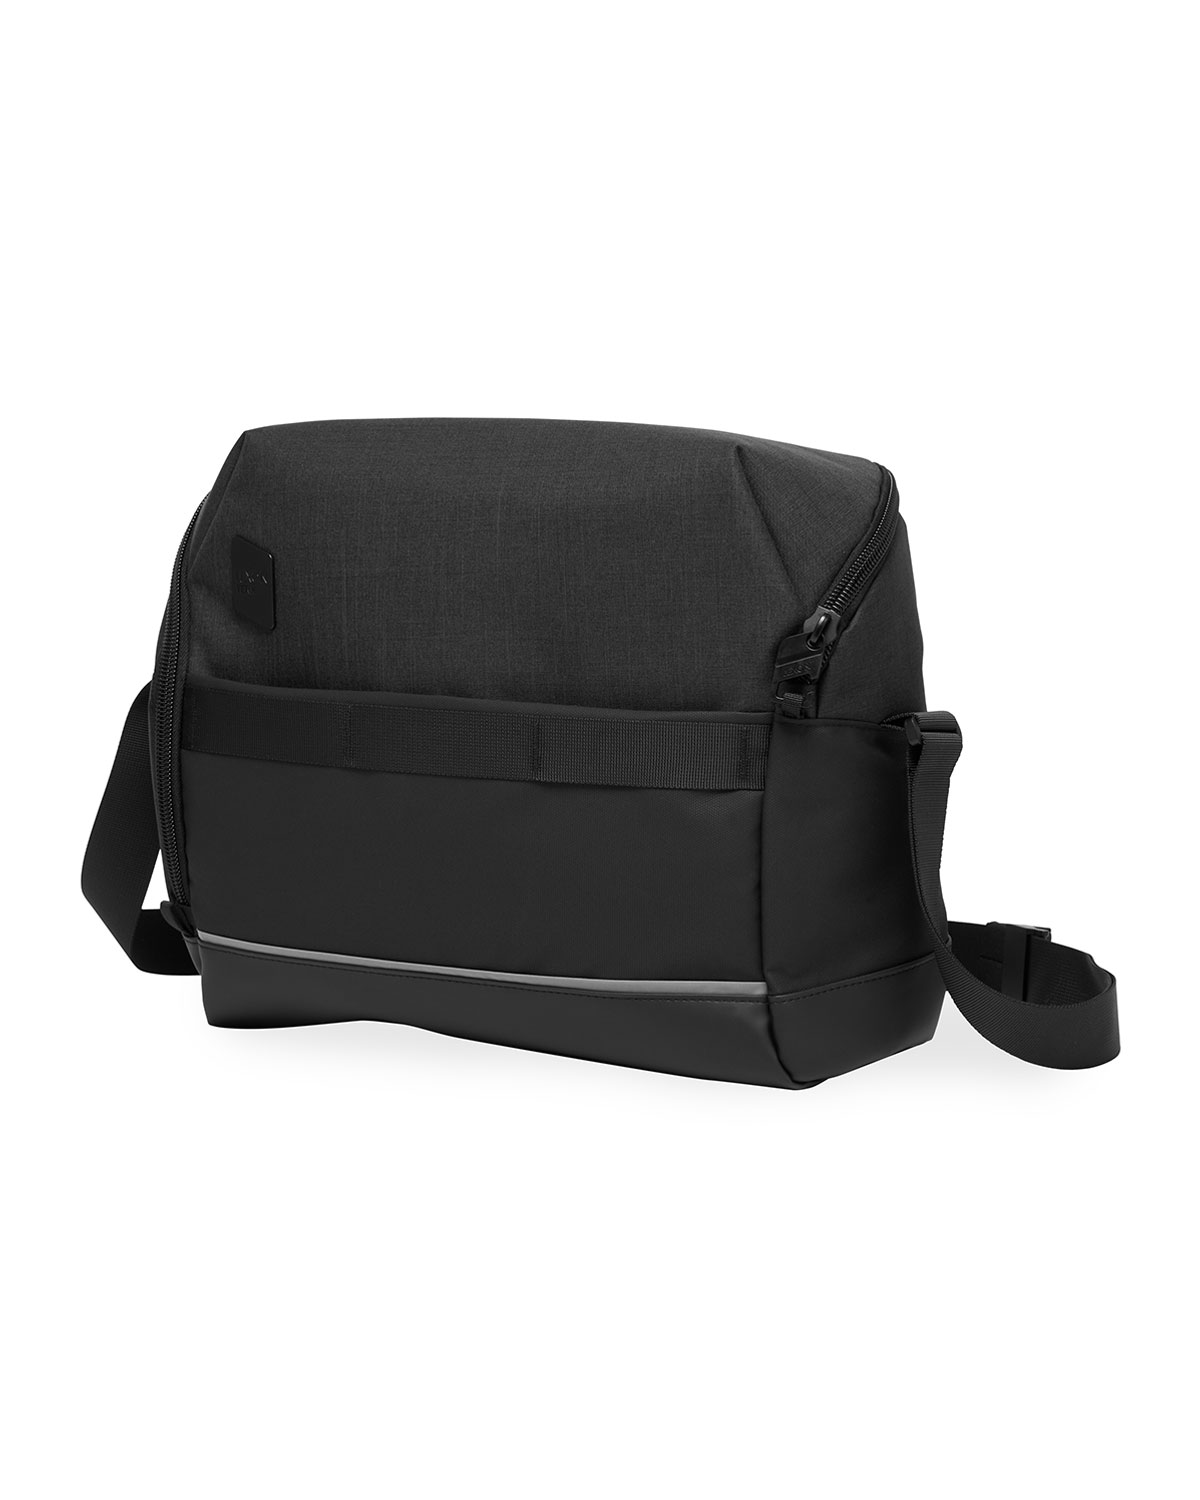 Lexon Design Tera Messenger Bag